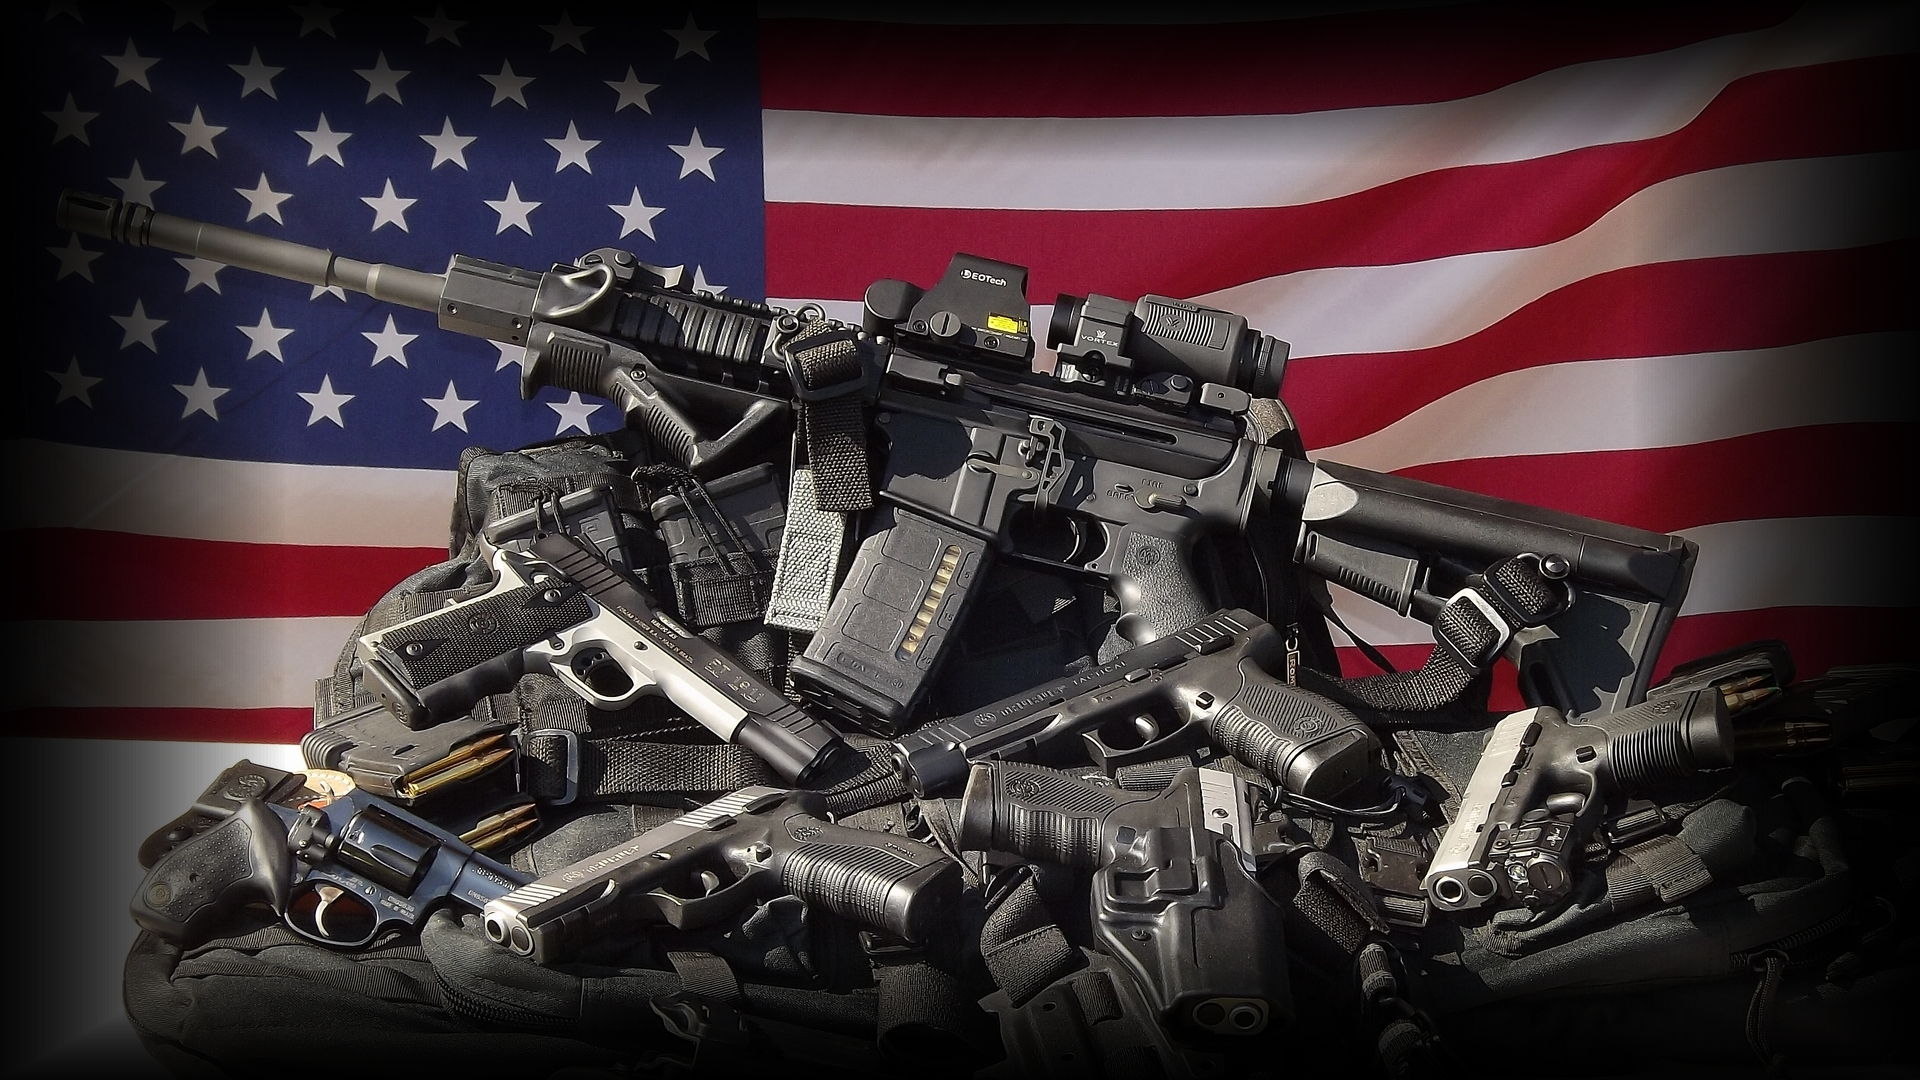 gun rights wallpaper   weddingdressincom 1920x1080